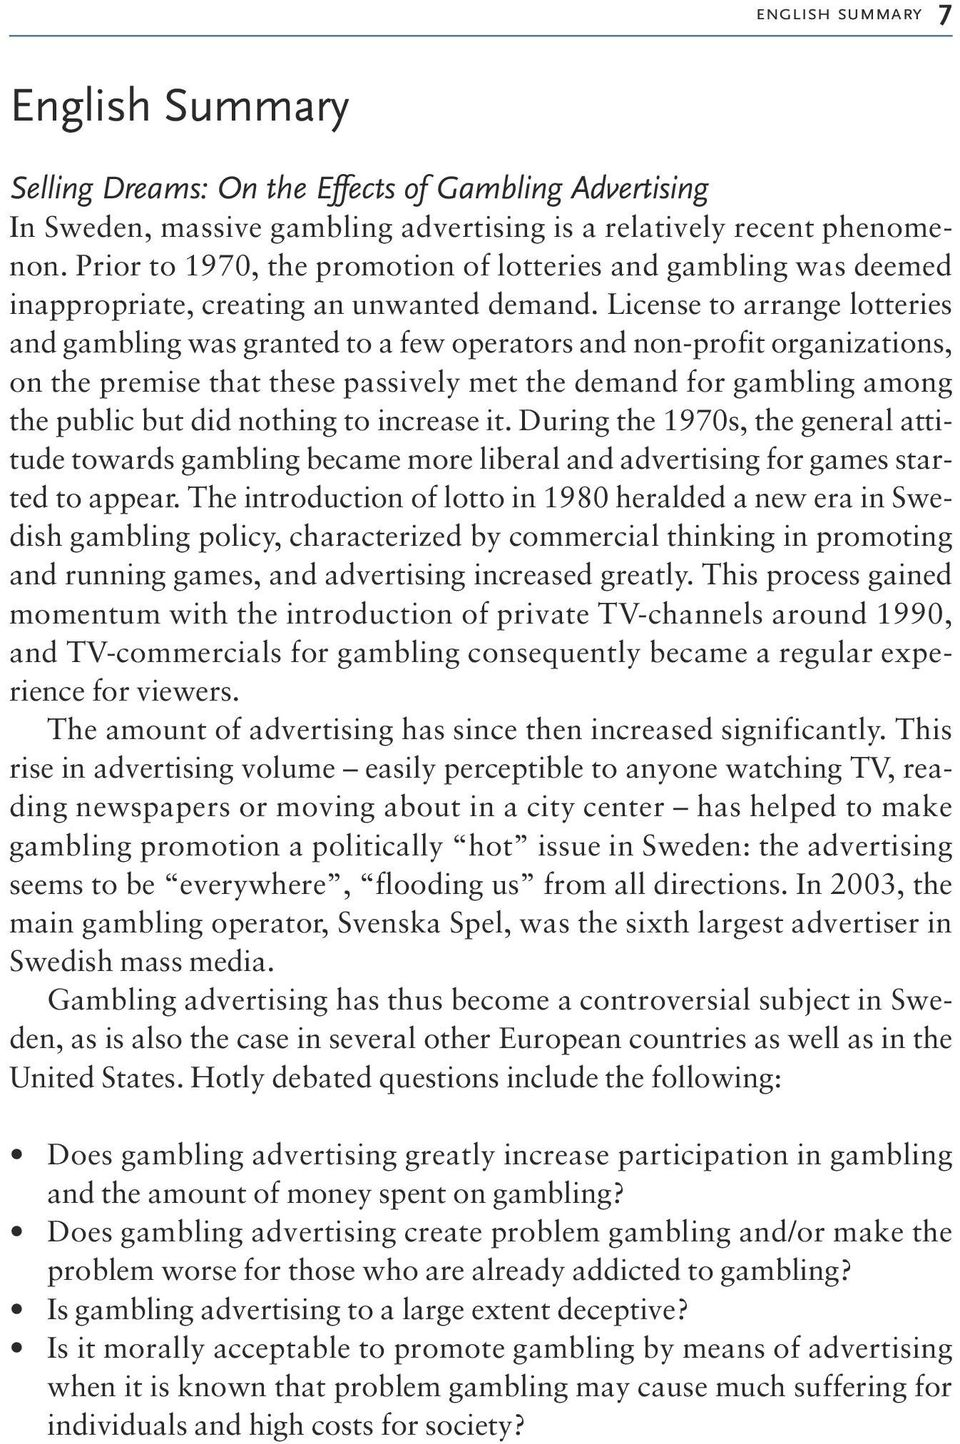 License to arrange lotteries and gambling was granted to a few operators and non-profit organizations, on the premise that these passively met the demand for gambling among the public but did nothing